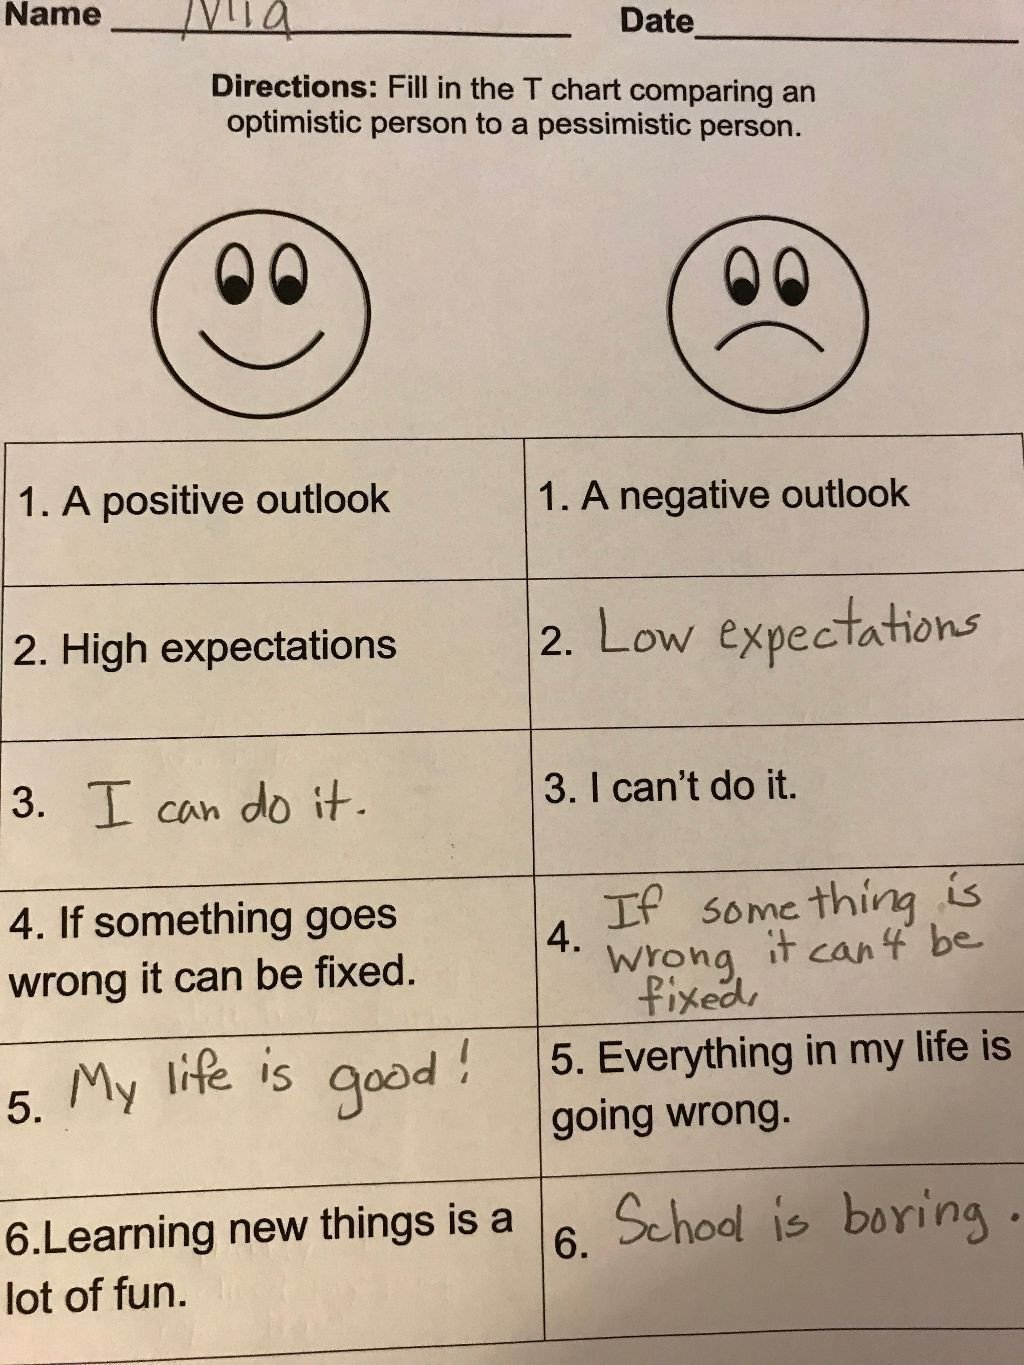 Positive attitude Activities Worksheets Promotes Positive Thinking with An original Poem and